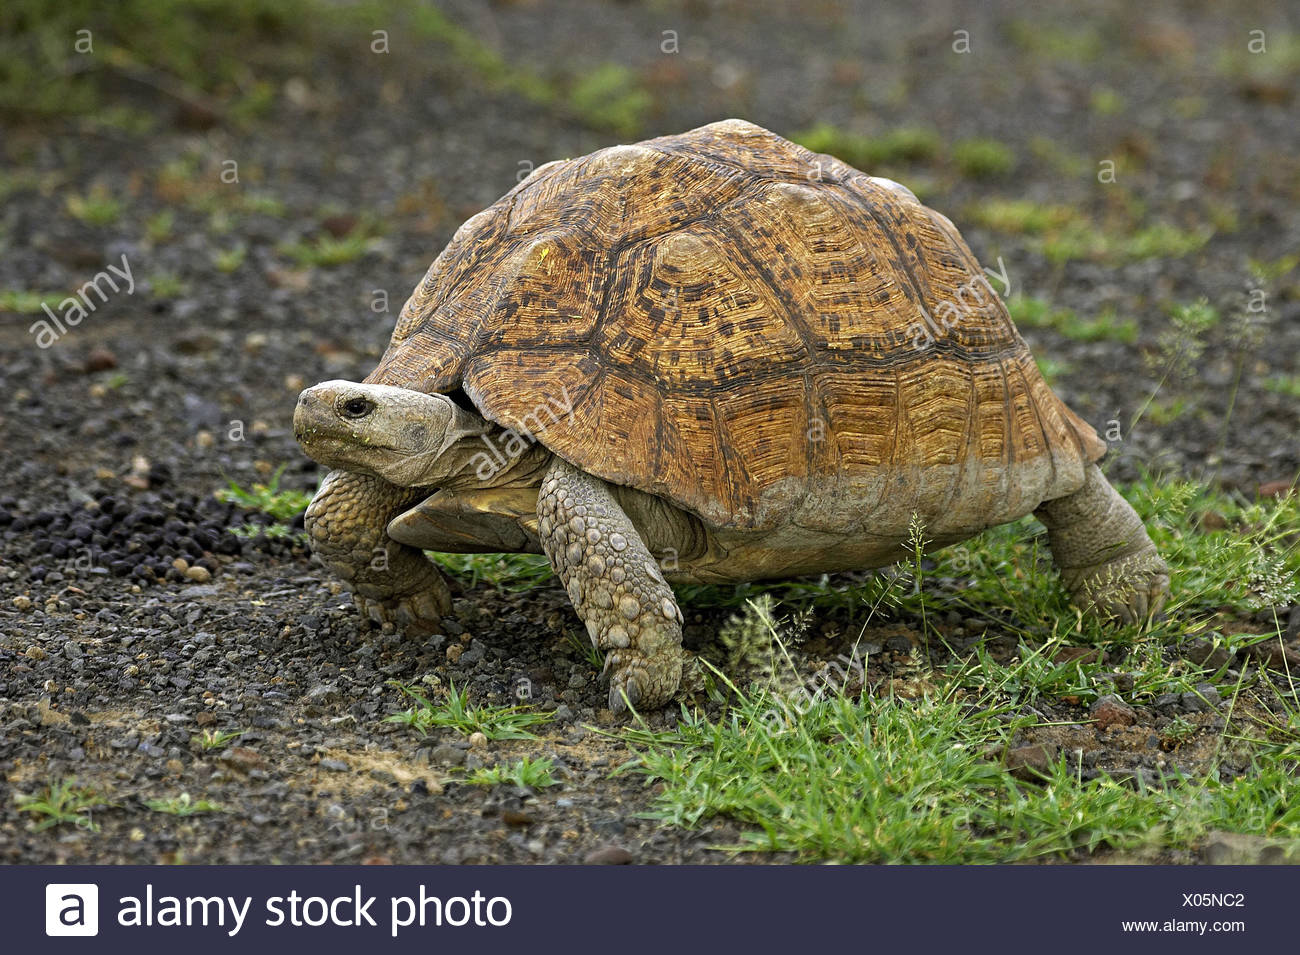 Panther's tortoise, Geochelone pardalis, adult animal, grass, Kenya, - Stock Image